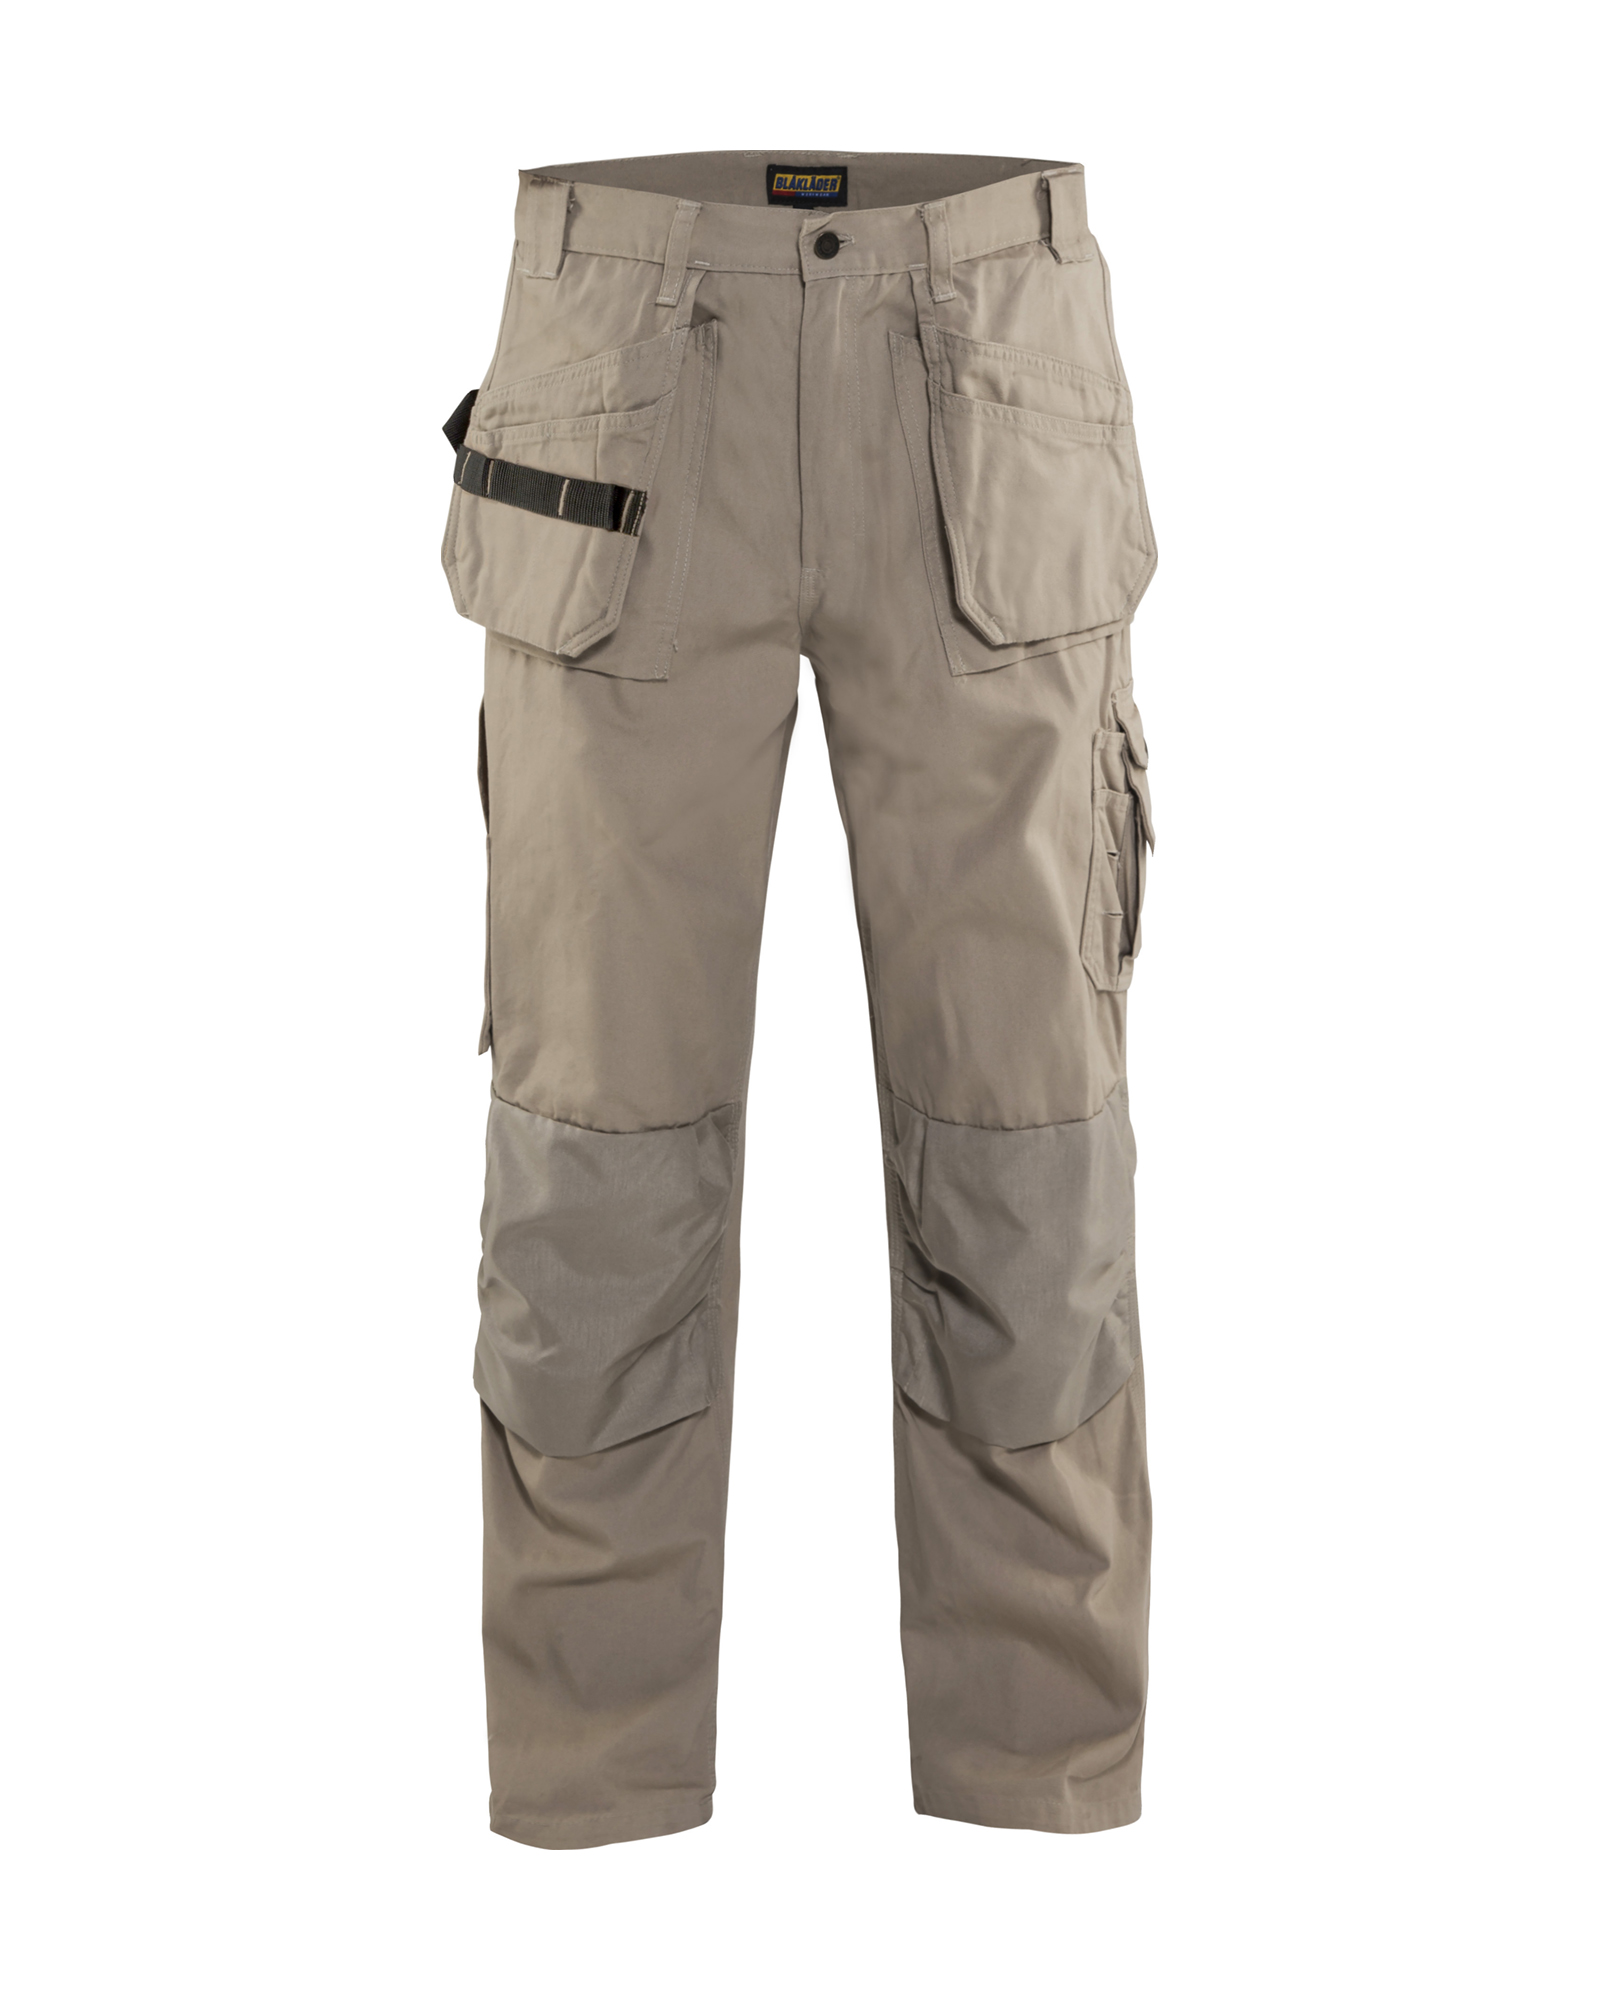 official photos 100% authentic best selection of 2019 BANTAM WORK PANTS - With Utility Pockets